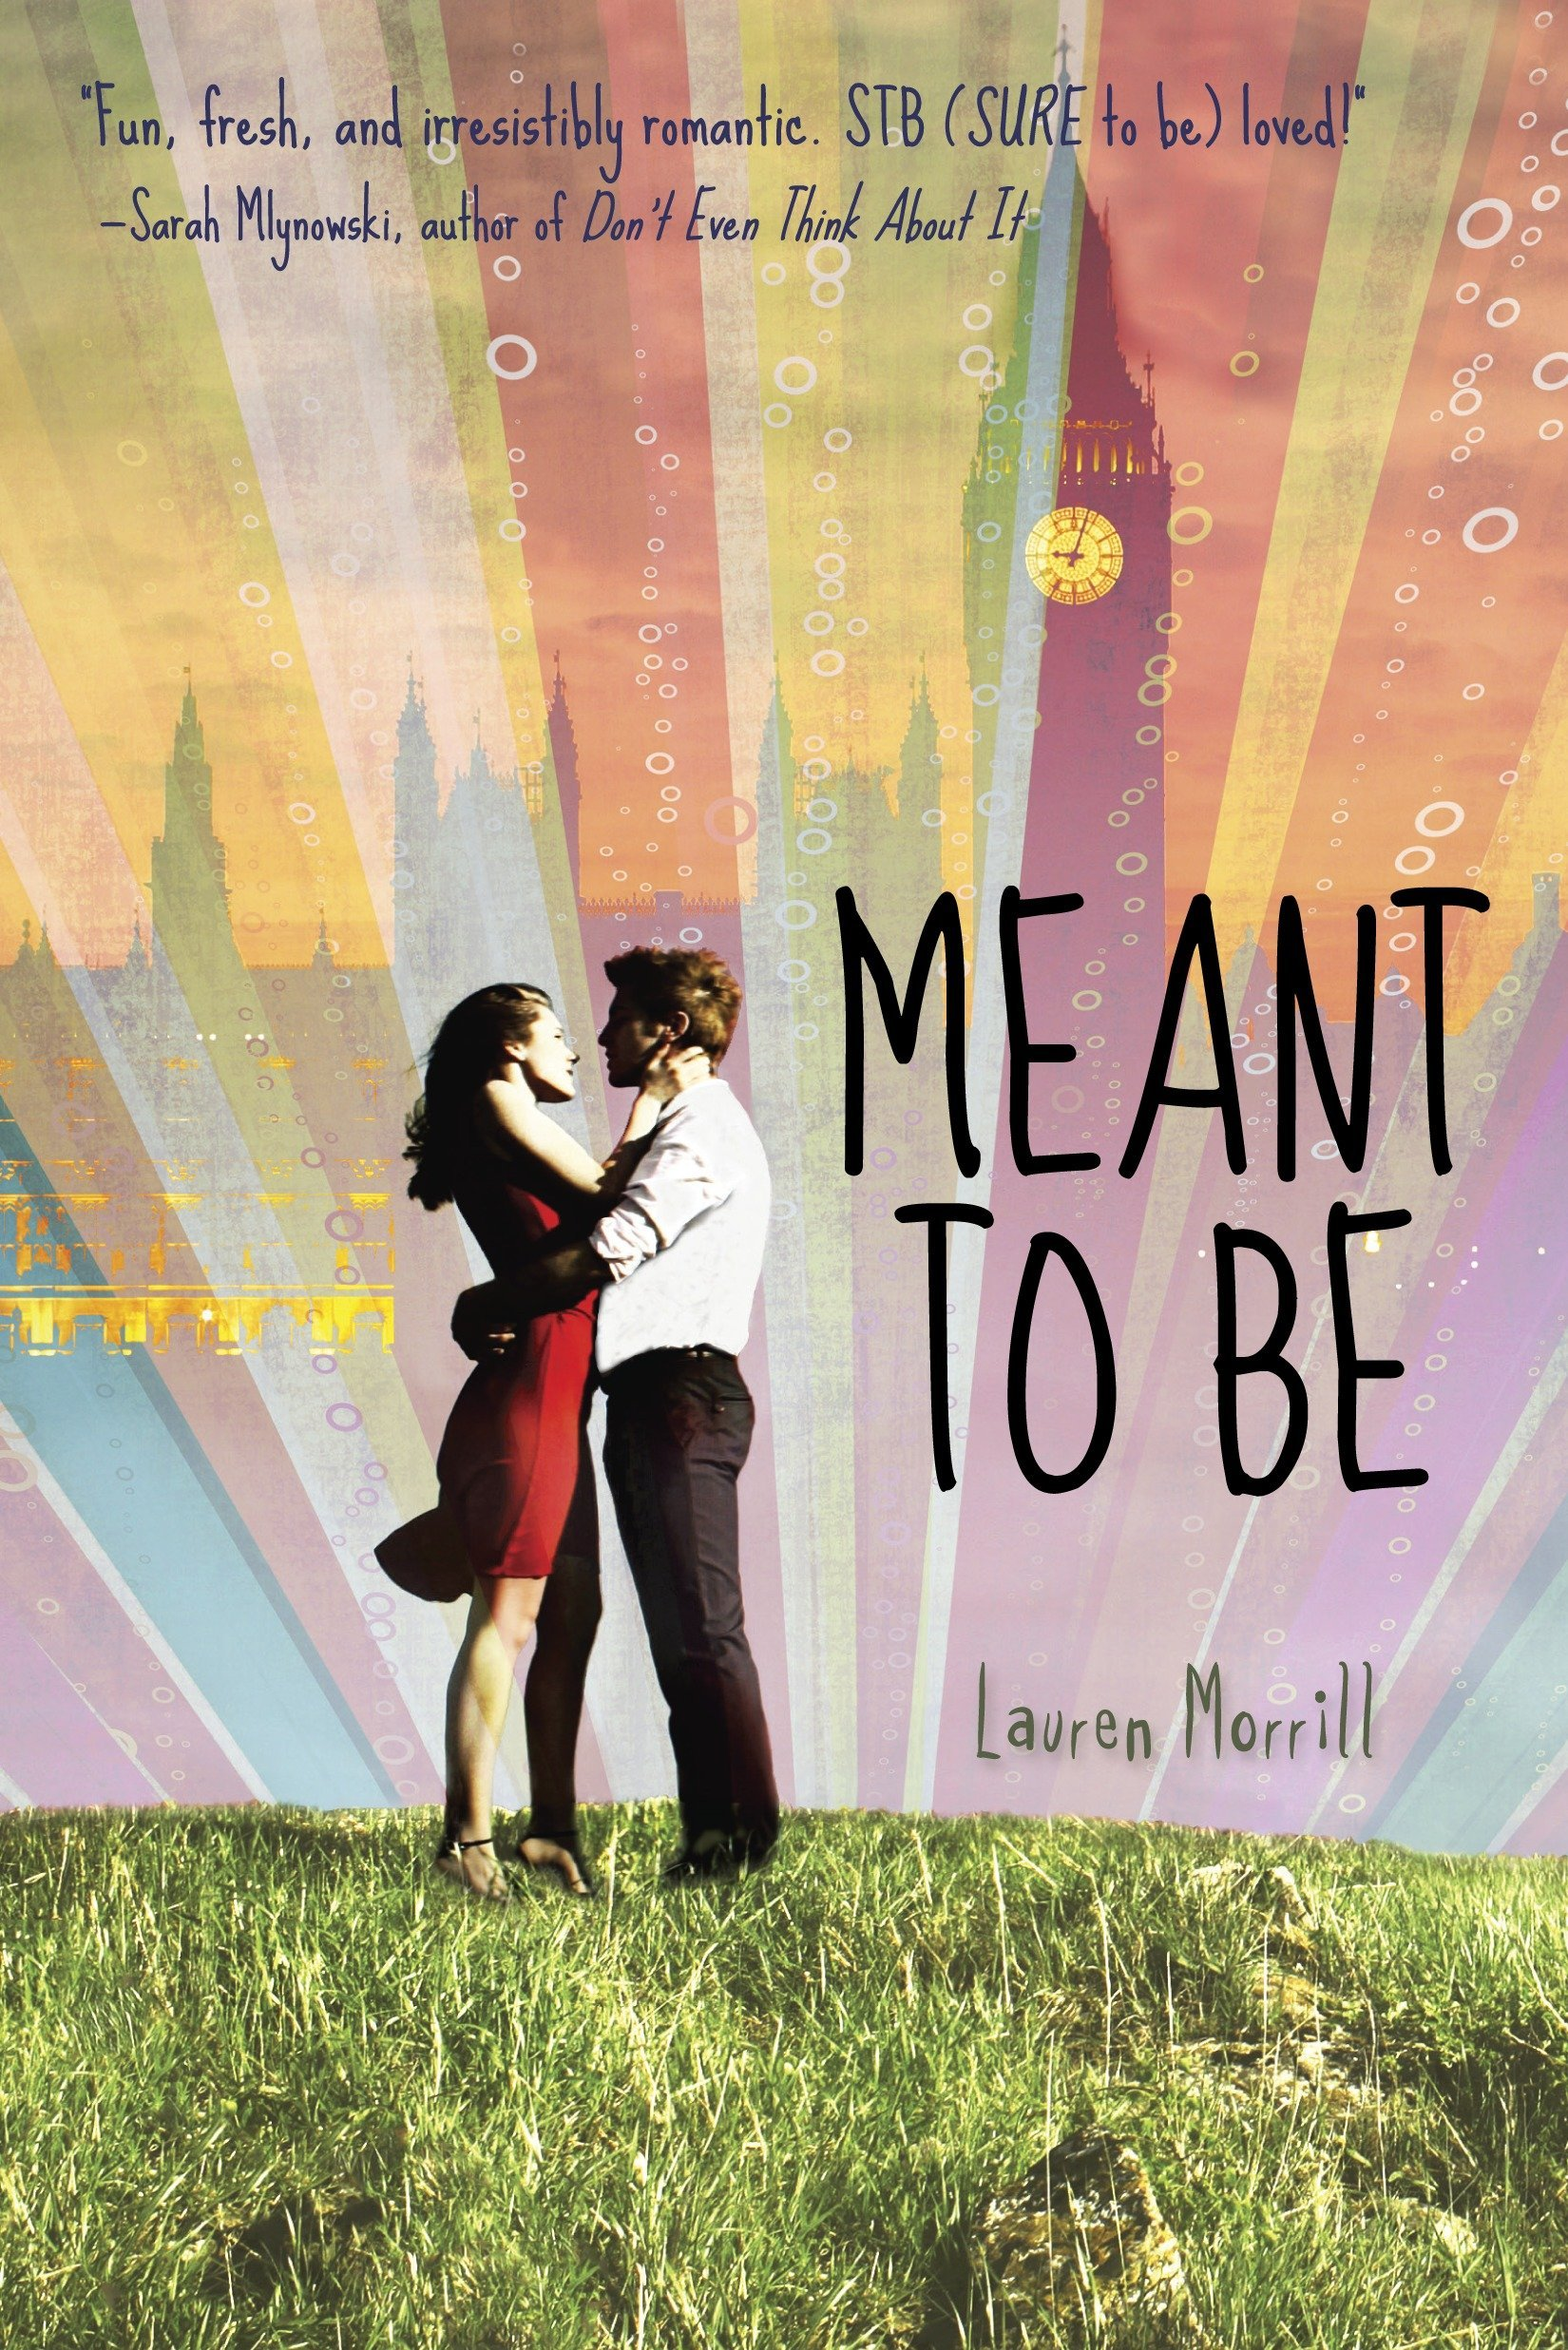 Meant to Be: Amazon.de: Morrill, Lauren: Fremdsprachige Bücher